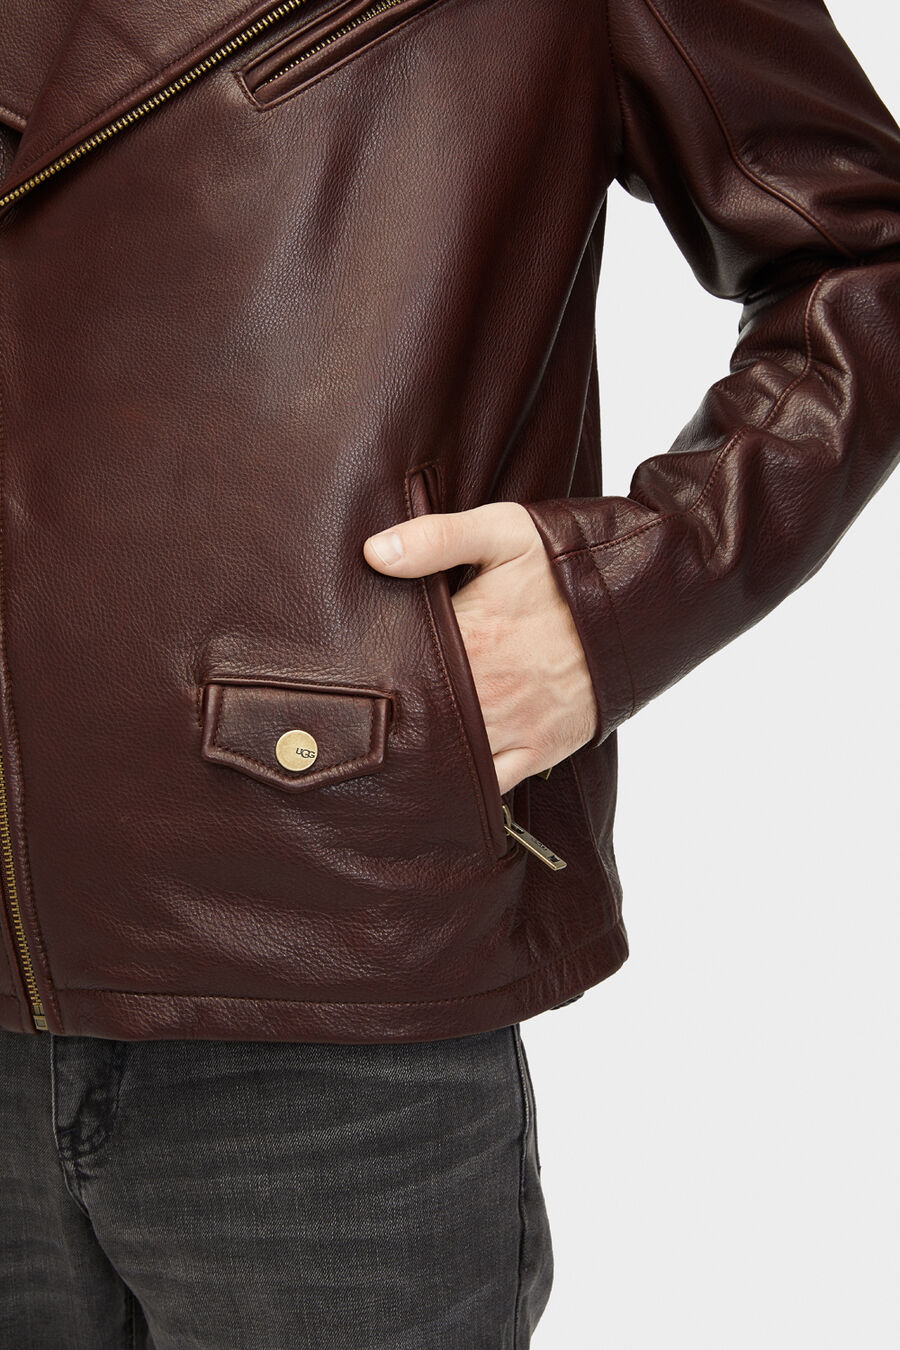 Vaughn Leather Moto Jacket - Image 4 of 6